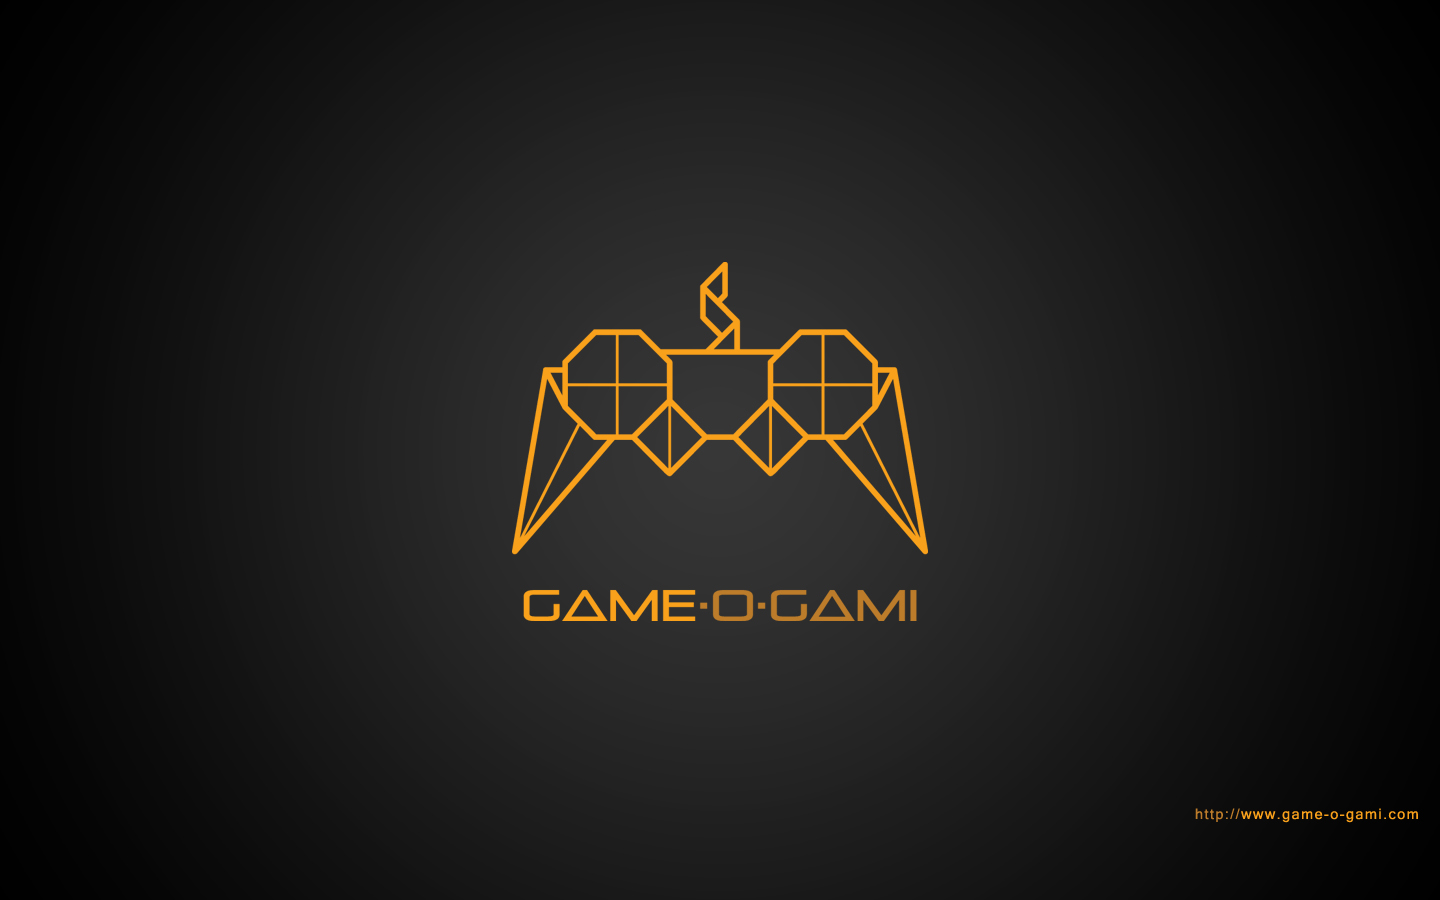 Wallpapers game o gami dark voltagebd Image collections